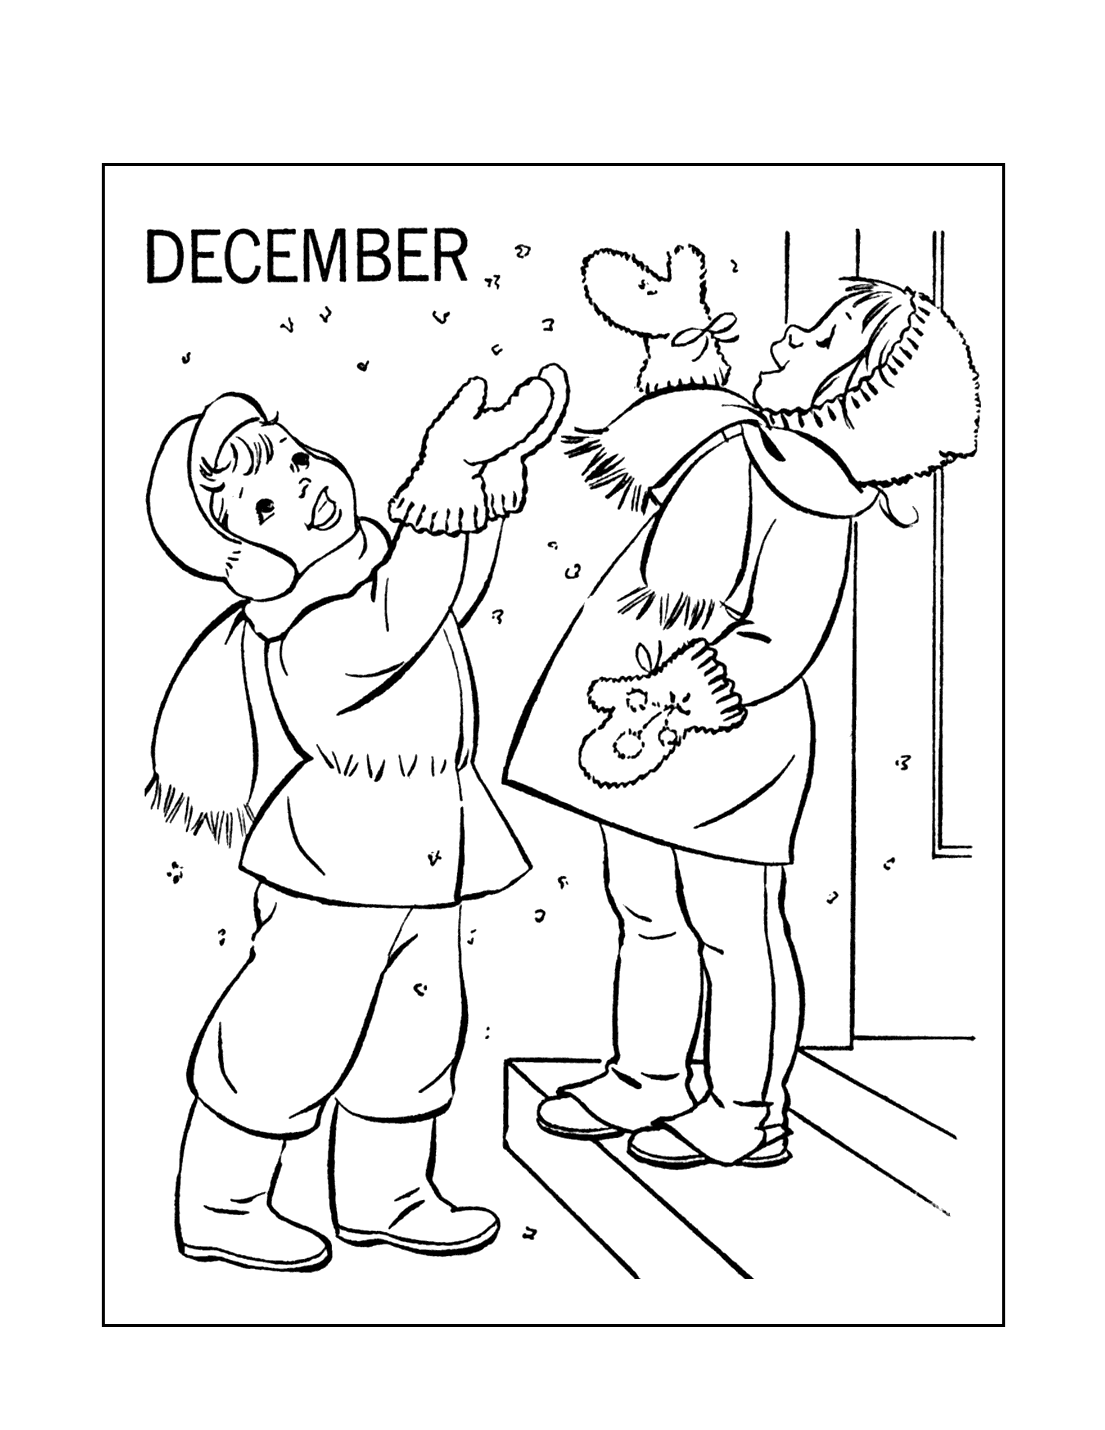 December Fun Coloring Pages